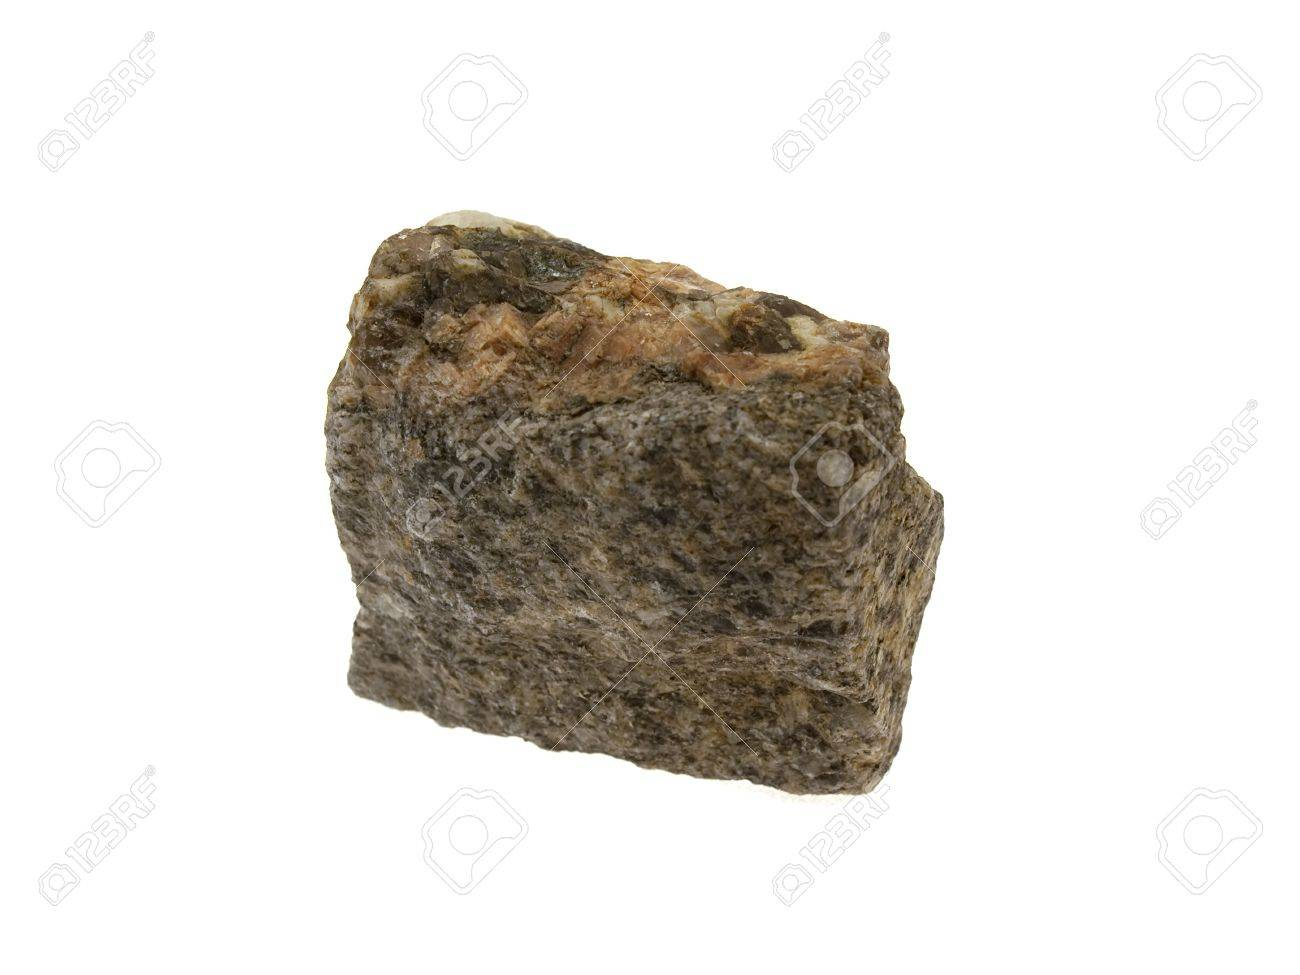 Small piece of a granite stone isolated on a white background Stock Photo - 5801742